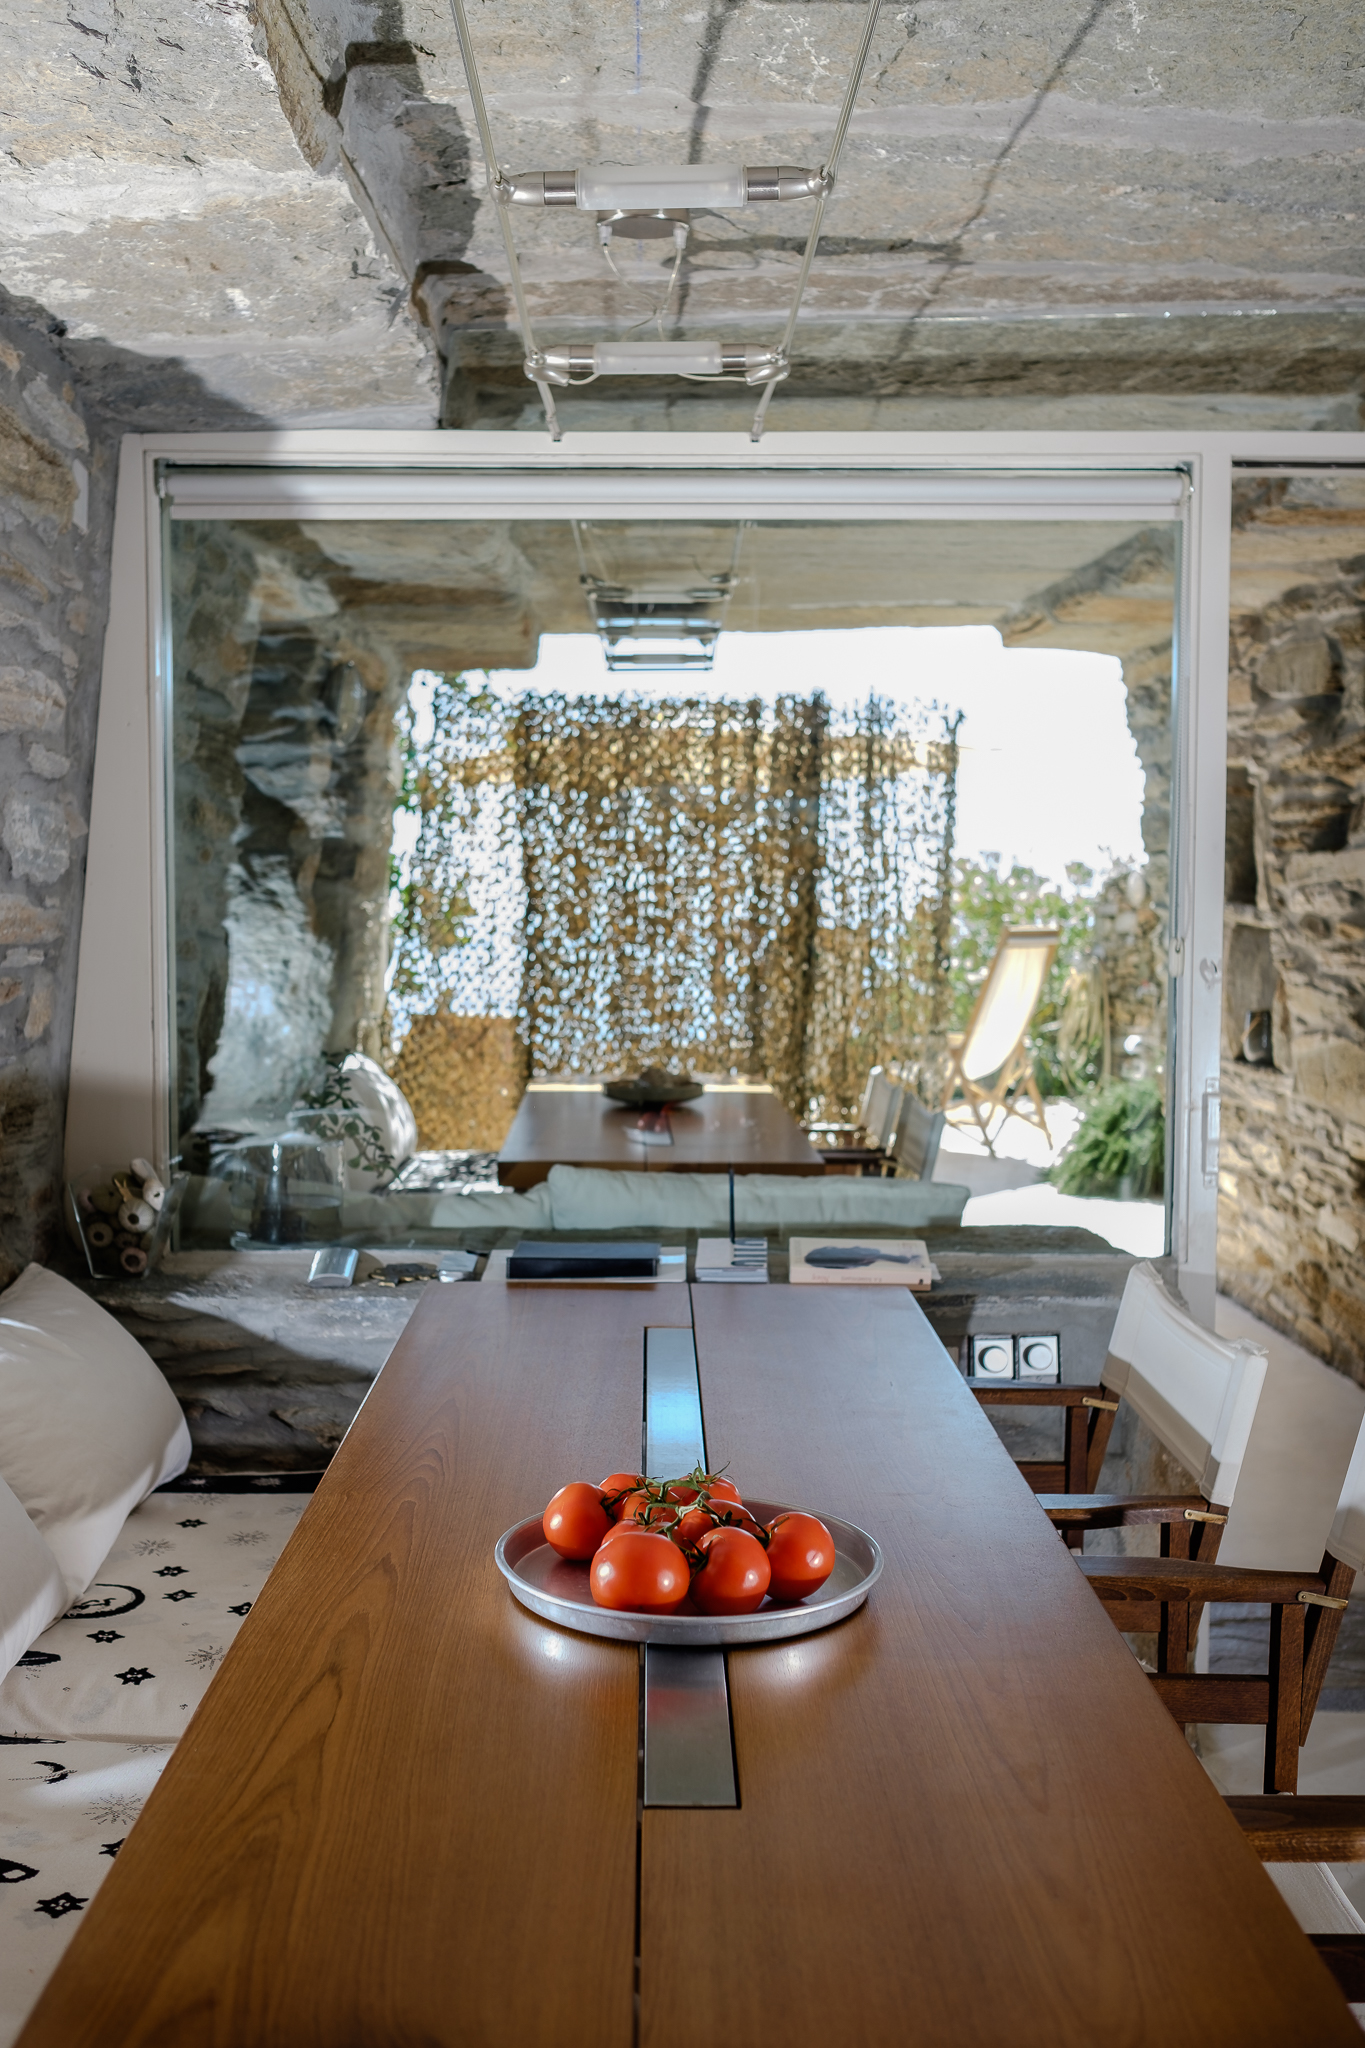 olivier fahrni-photographie-real estate-architecture-suisse-greece-09.jpg